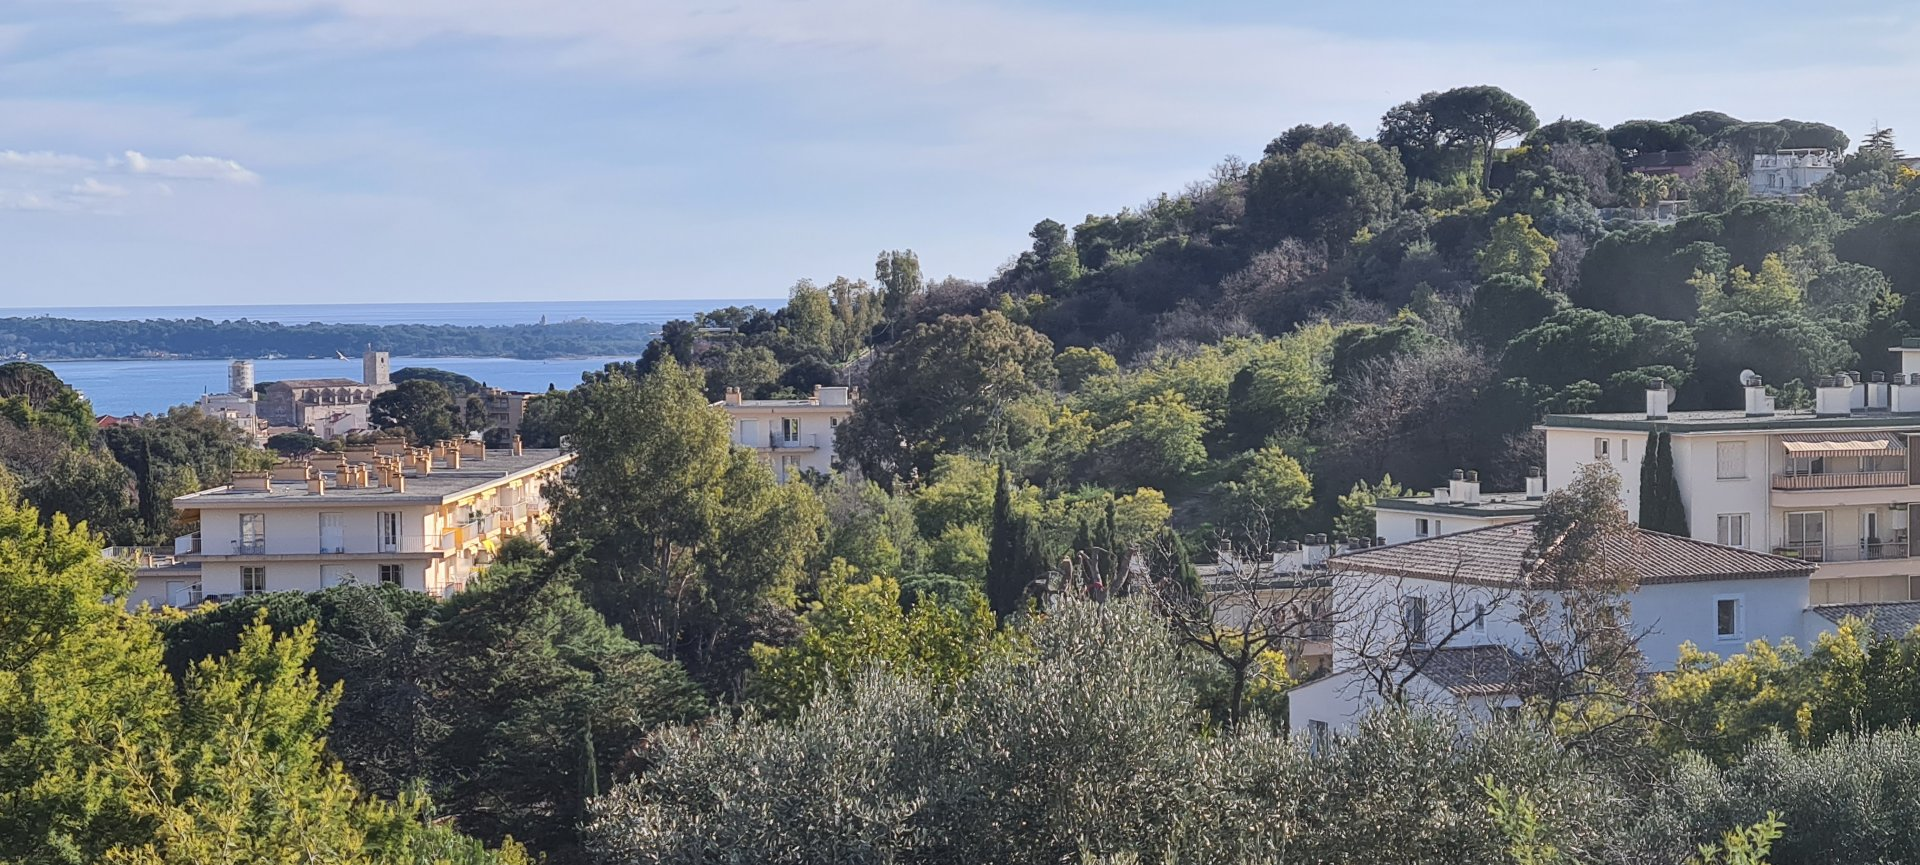 Property with sea view for sale in Cannes